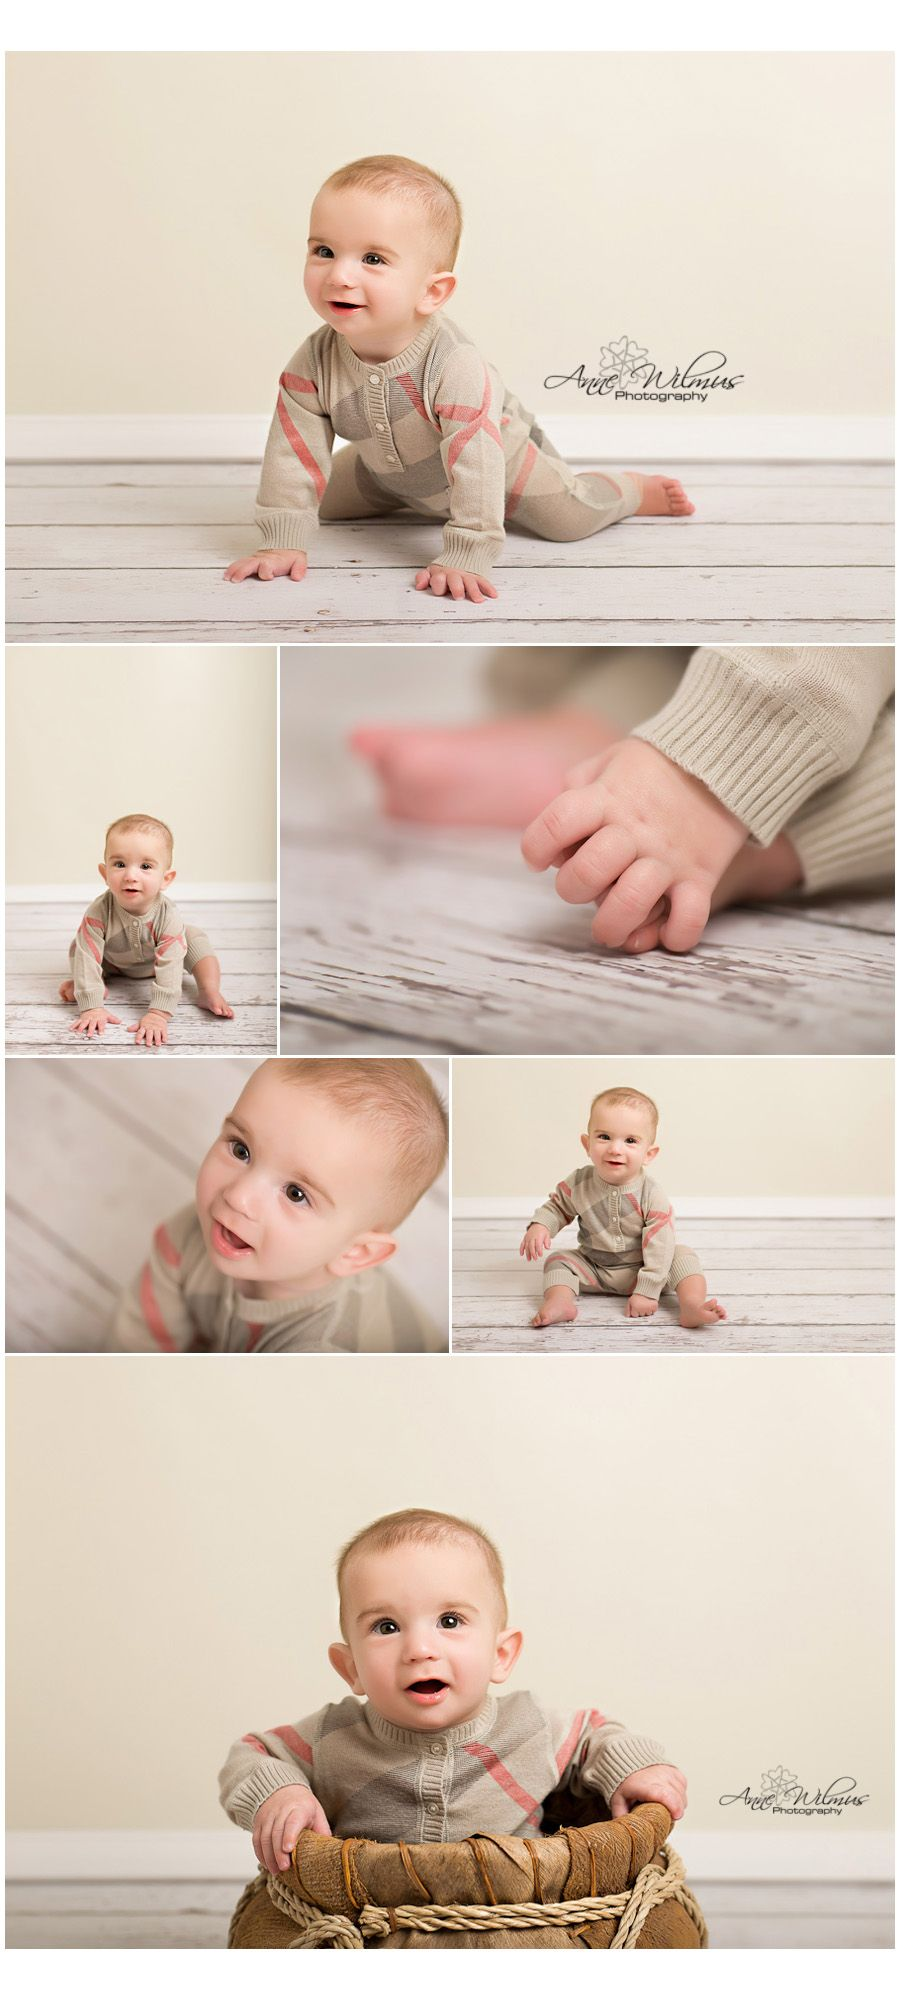 6 month baby photographer pittsburgh indoor and outdoor session lincoln 6 months baby photographer indoor and outdoor session